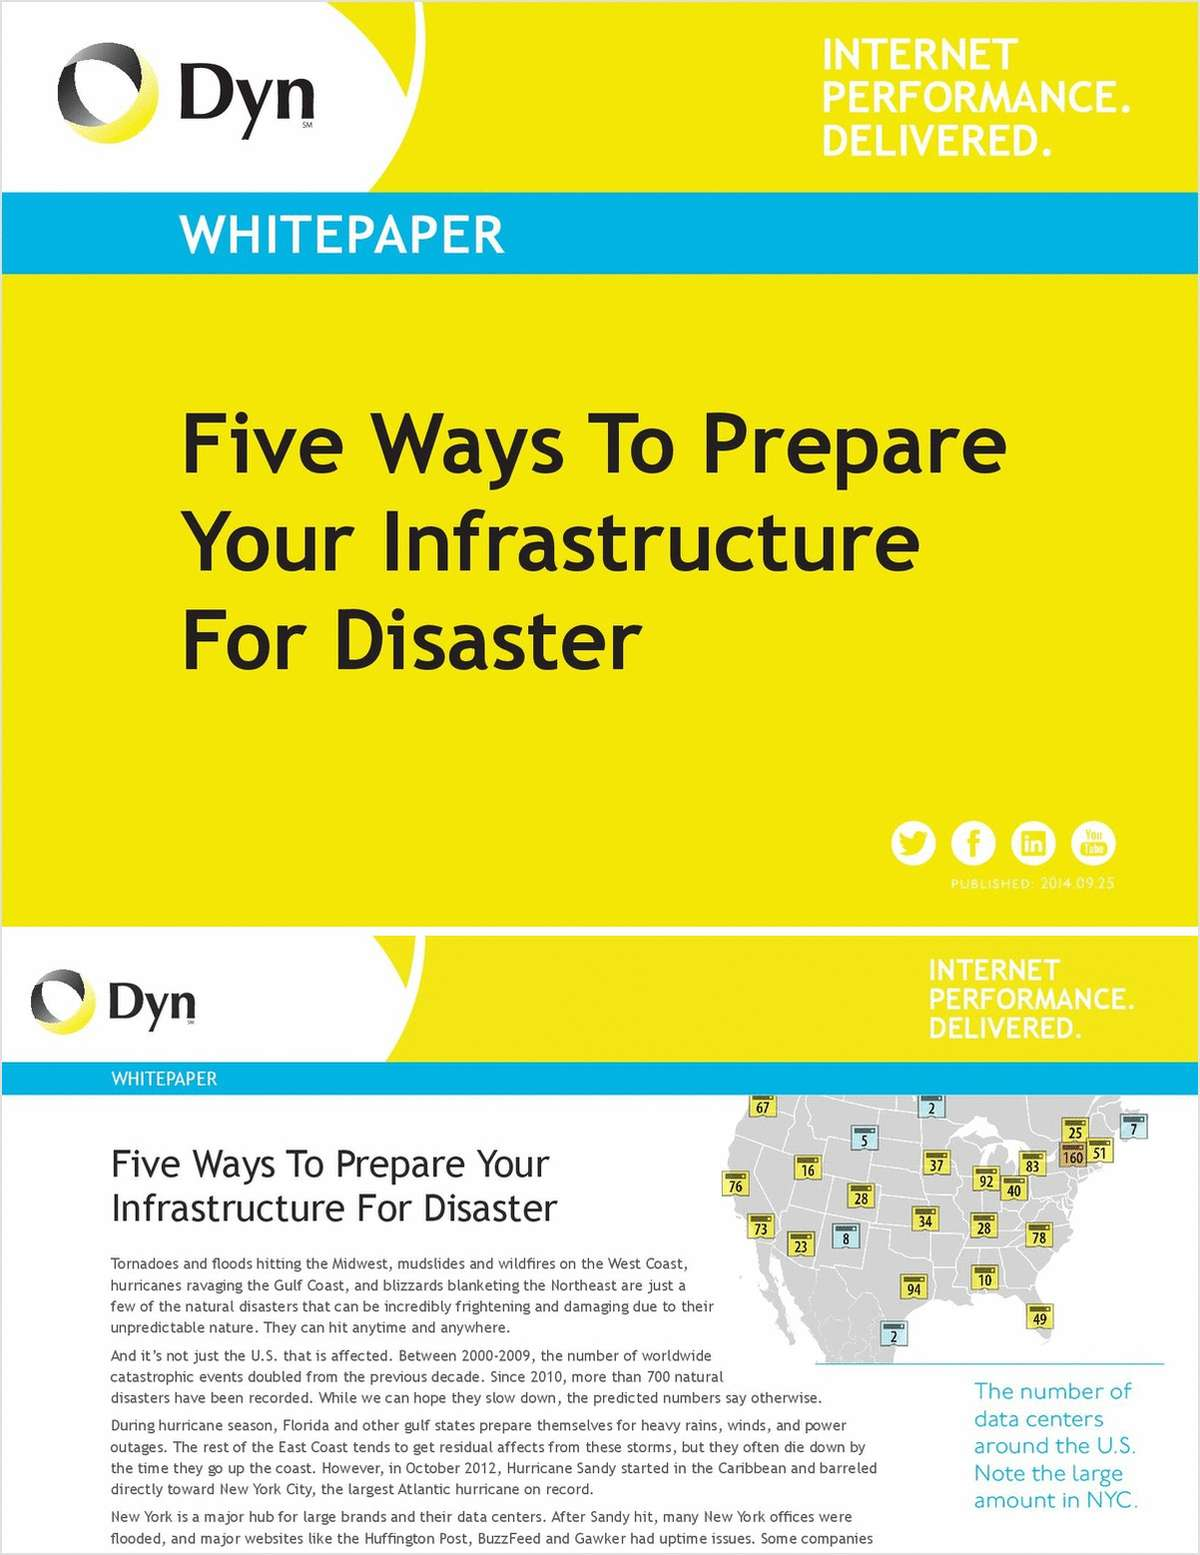 Five Ways To Prepare Your Infrastructure For Disaster